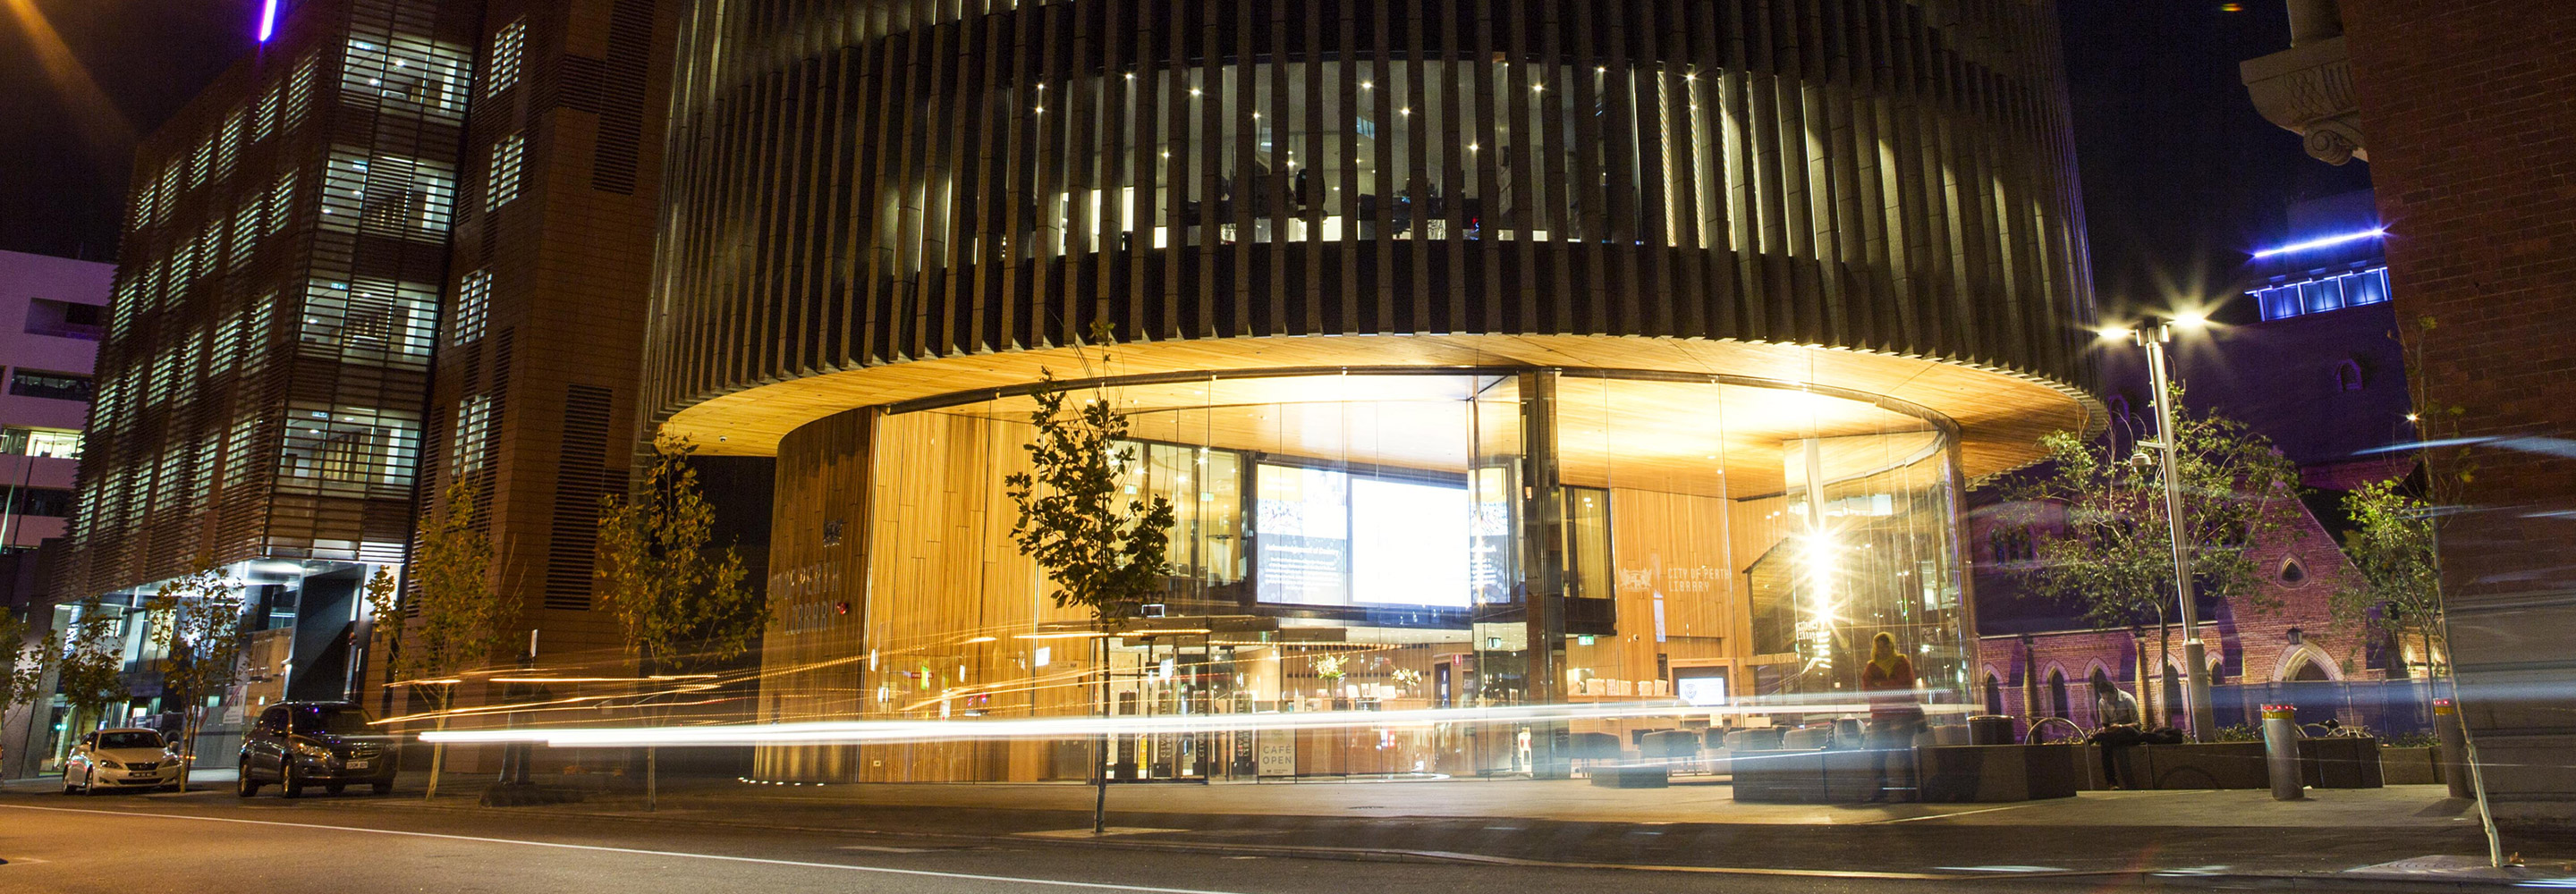 Night shot of Perth City Library with passing cars